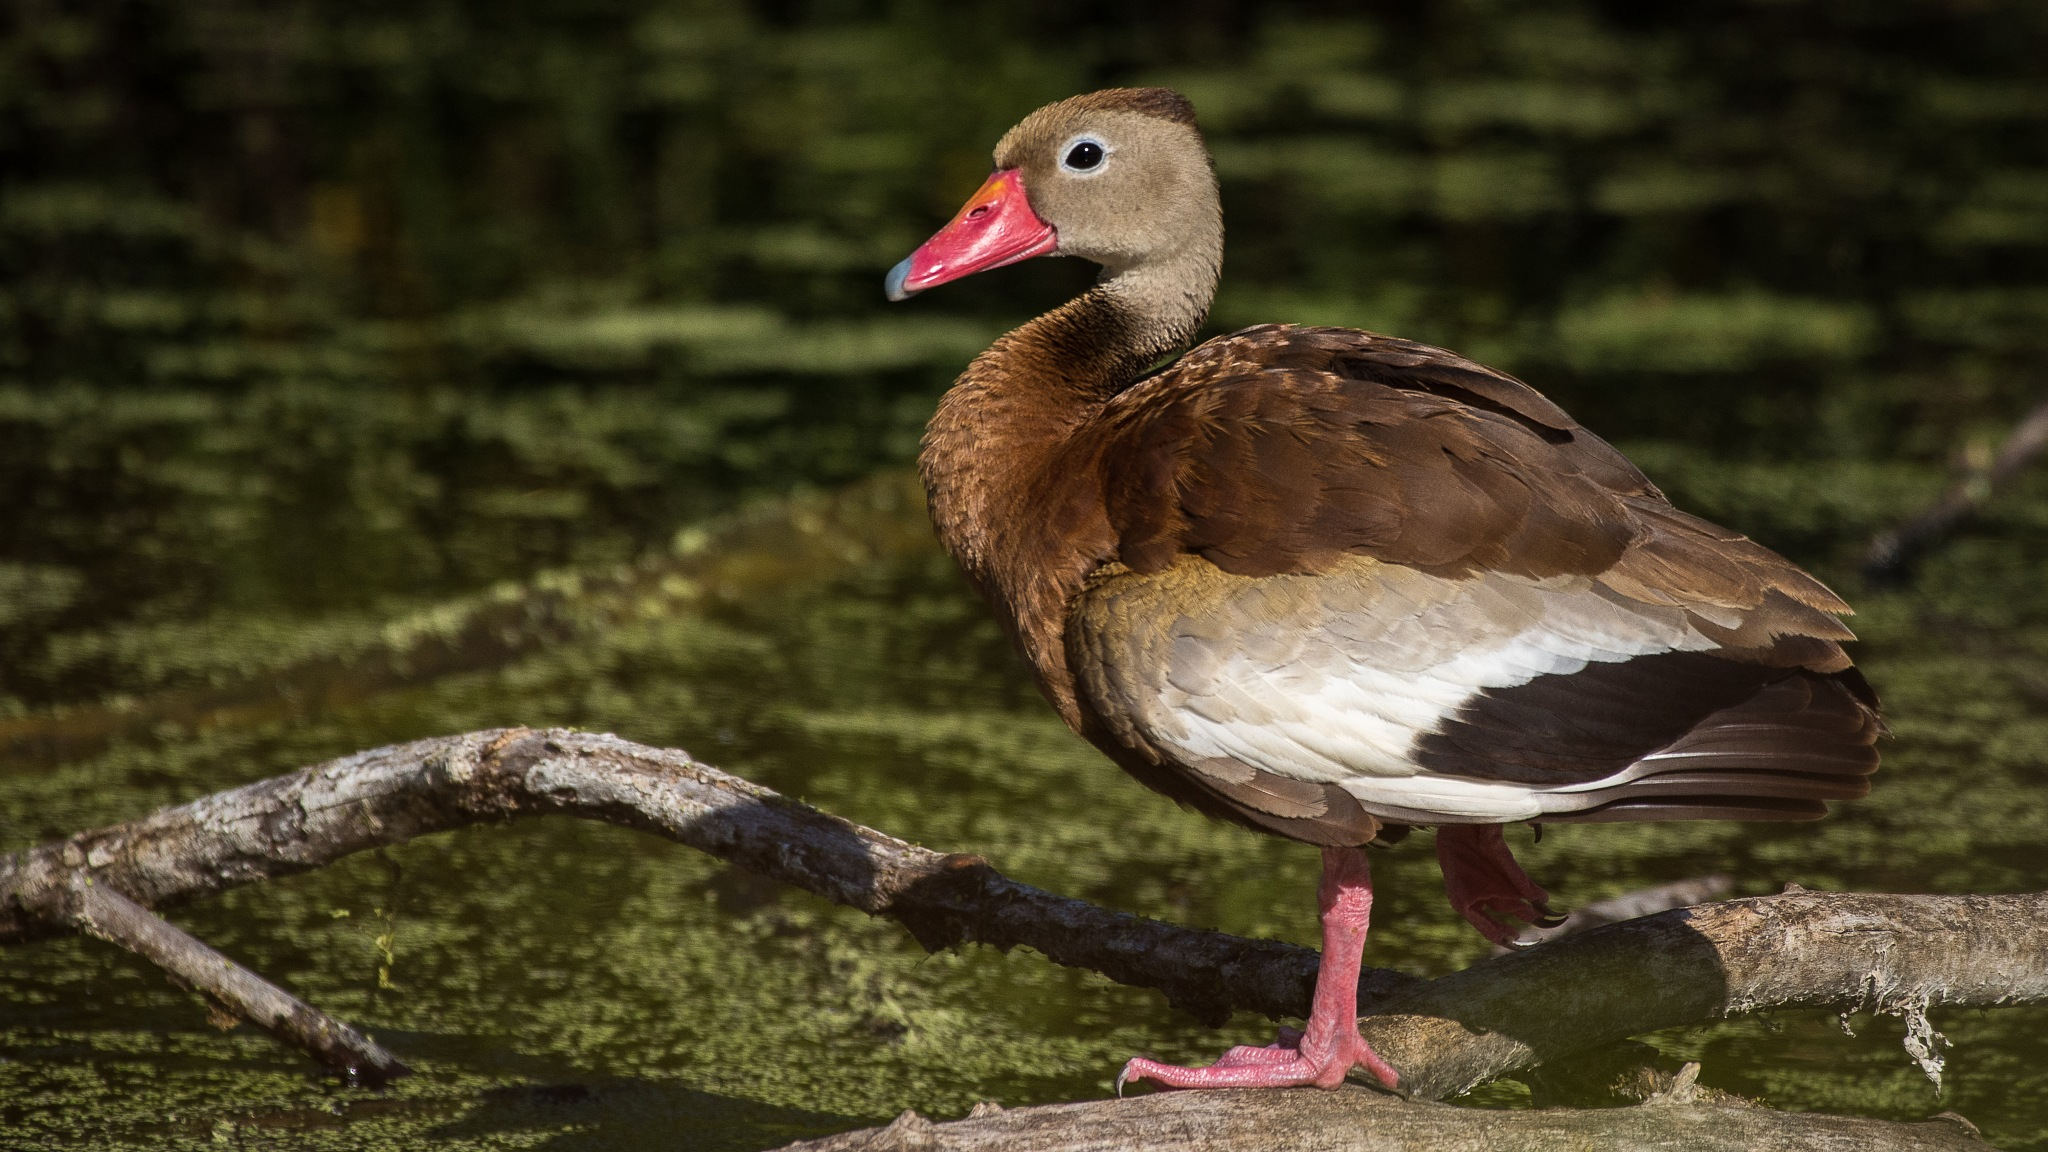 Whistling Duck by Steve Aicinena